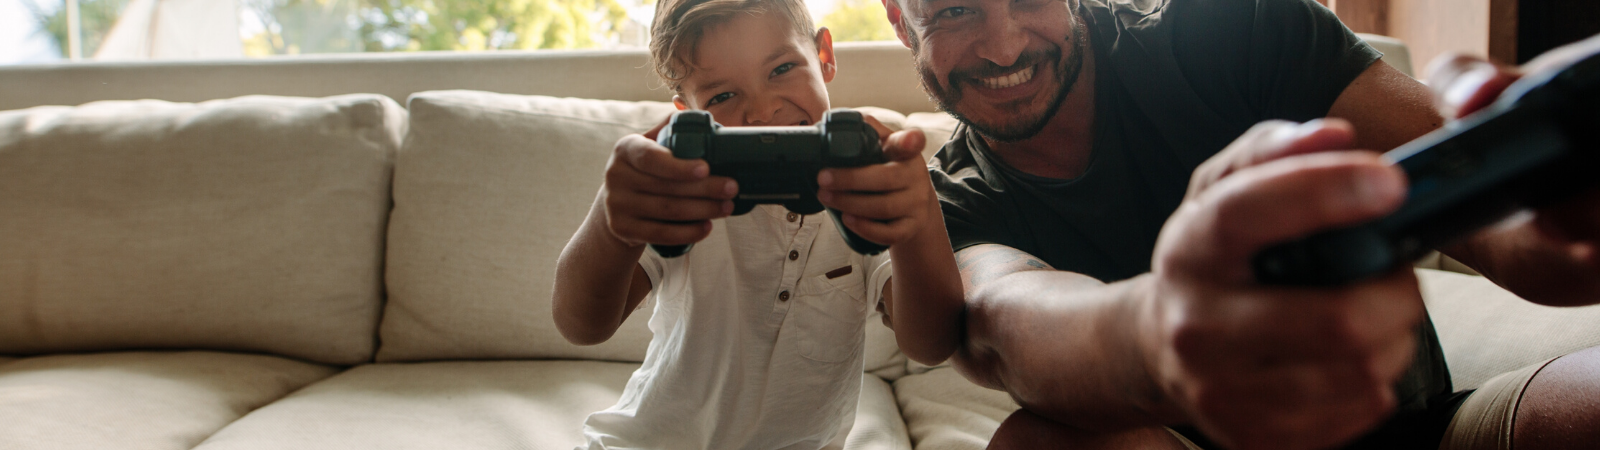 Dad and kid playing video games together on the couch